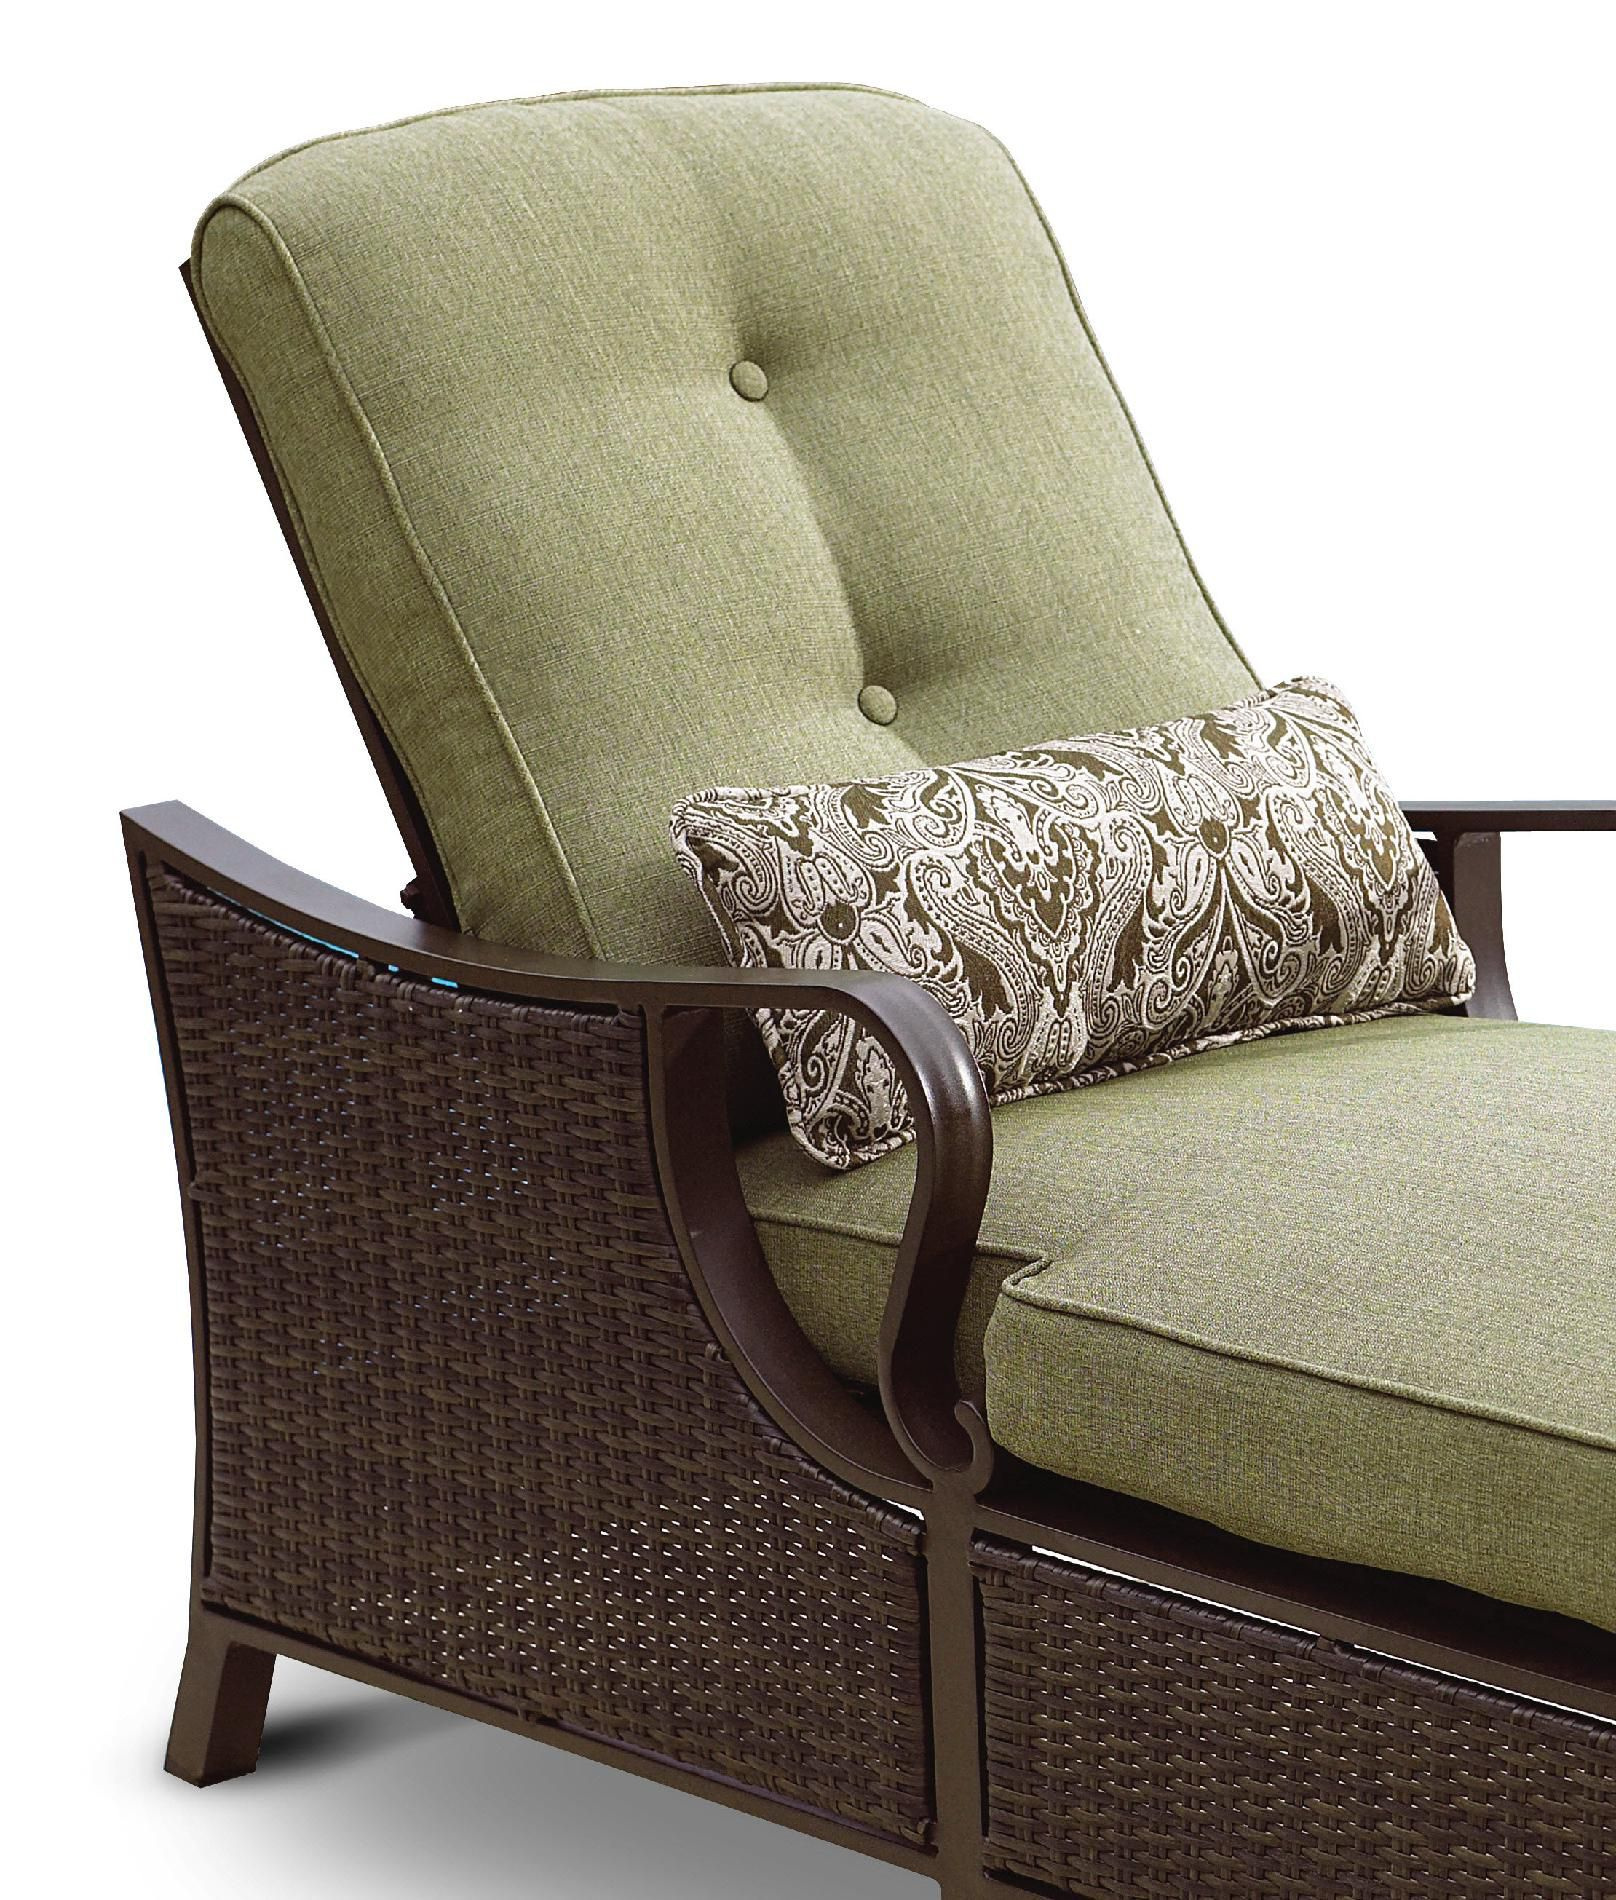 La-Z-Boy Outdoor Peyton Chaise Lounge *Limited Availability